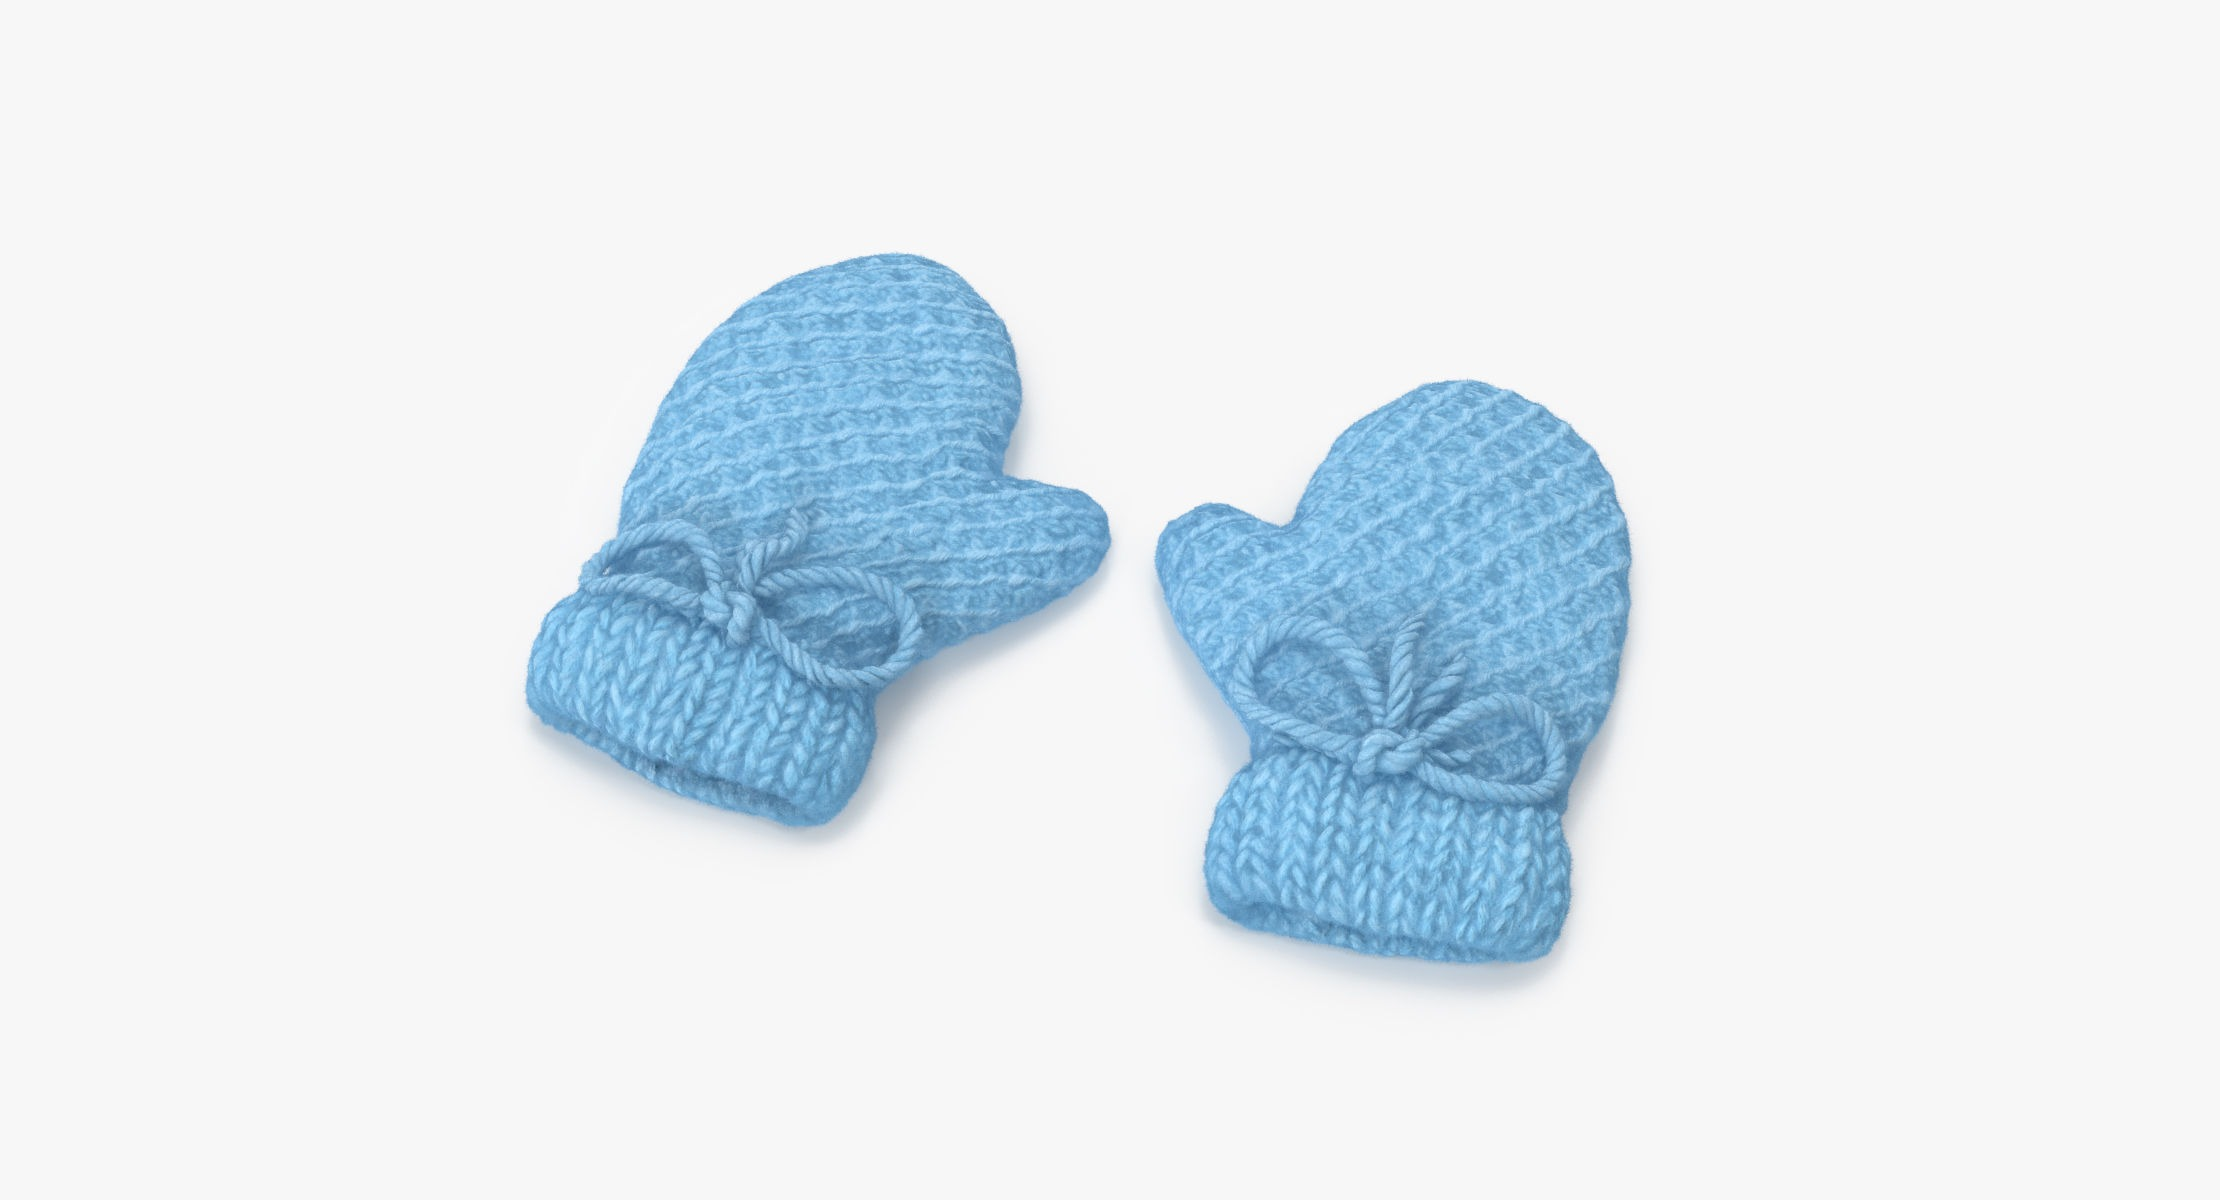 Newborn Mittens 01 Blue - reel 1